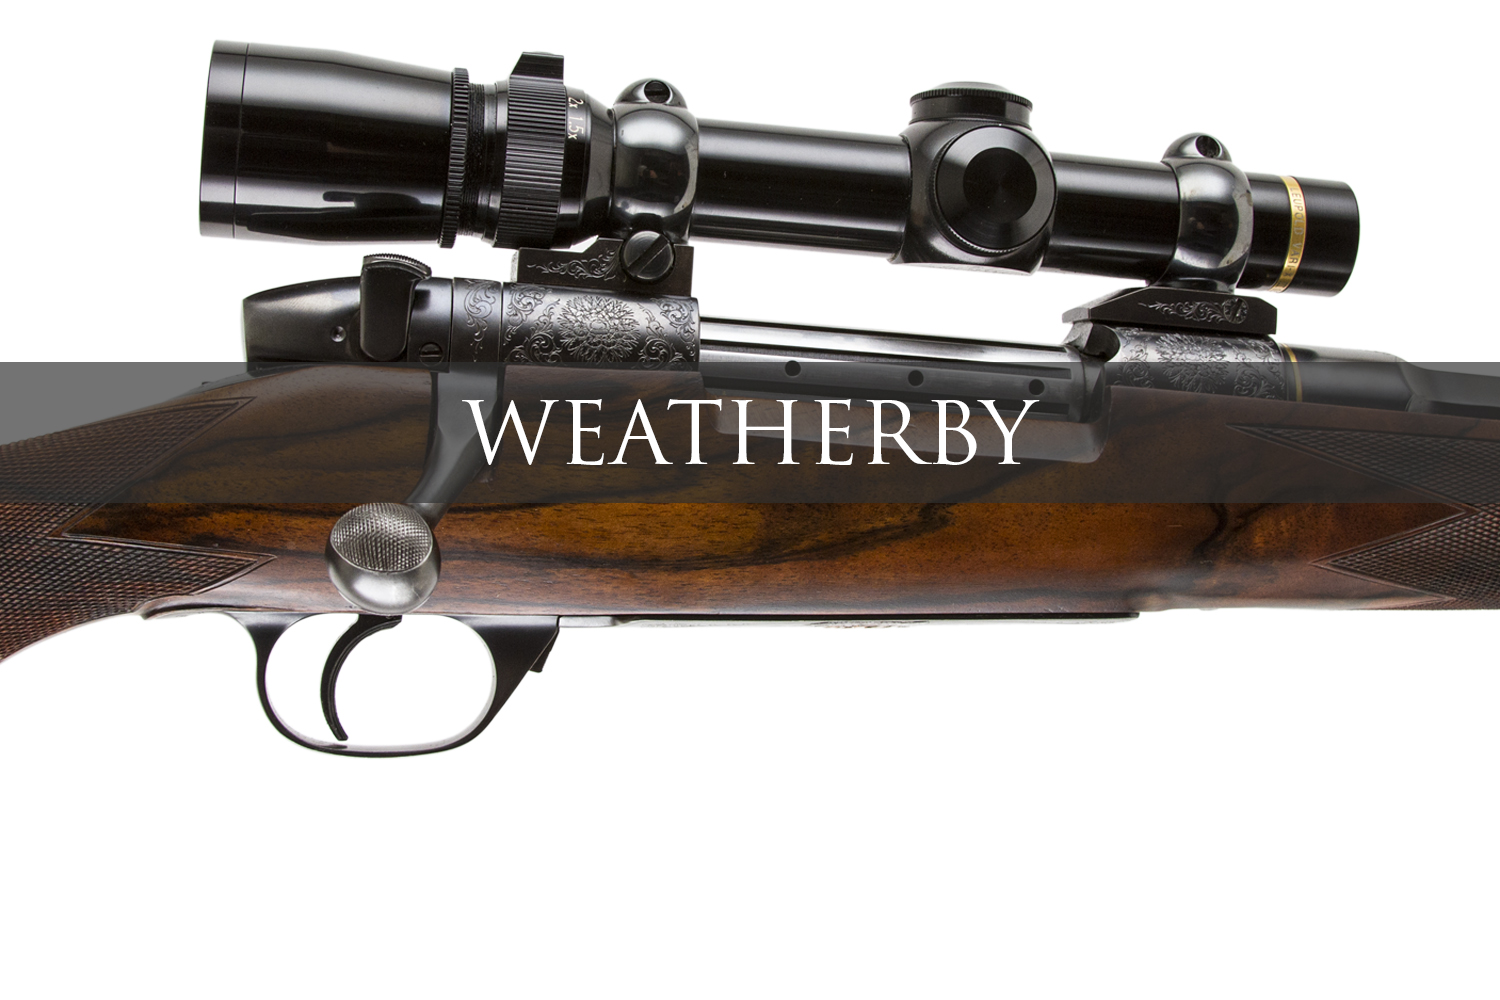 WEATHERBY RIFLE BANNER.jpg